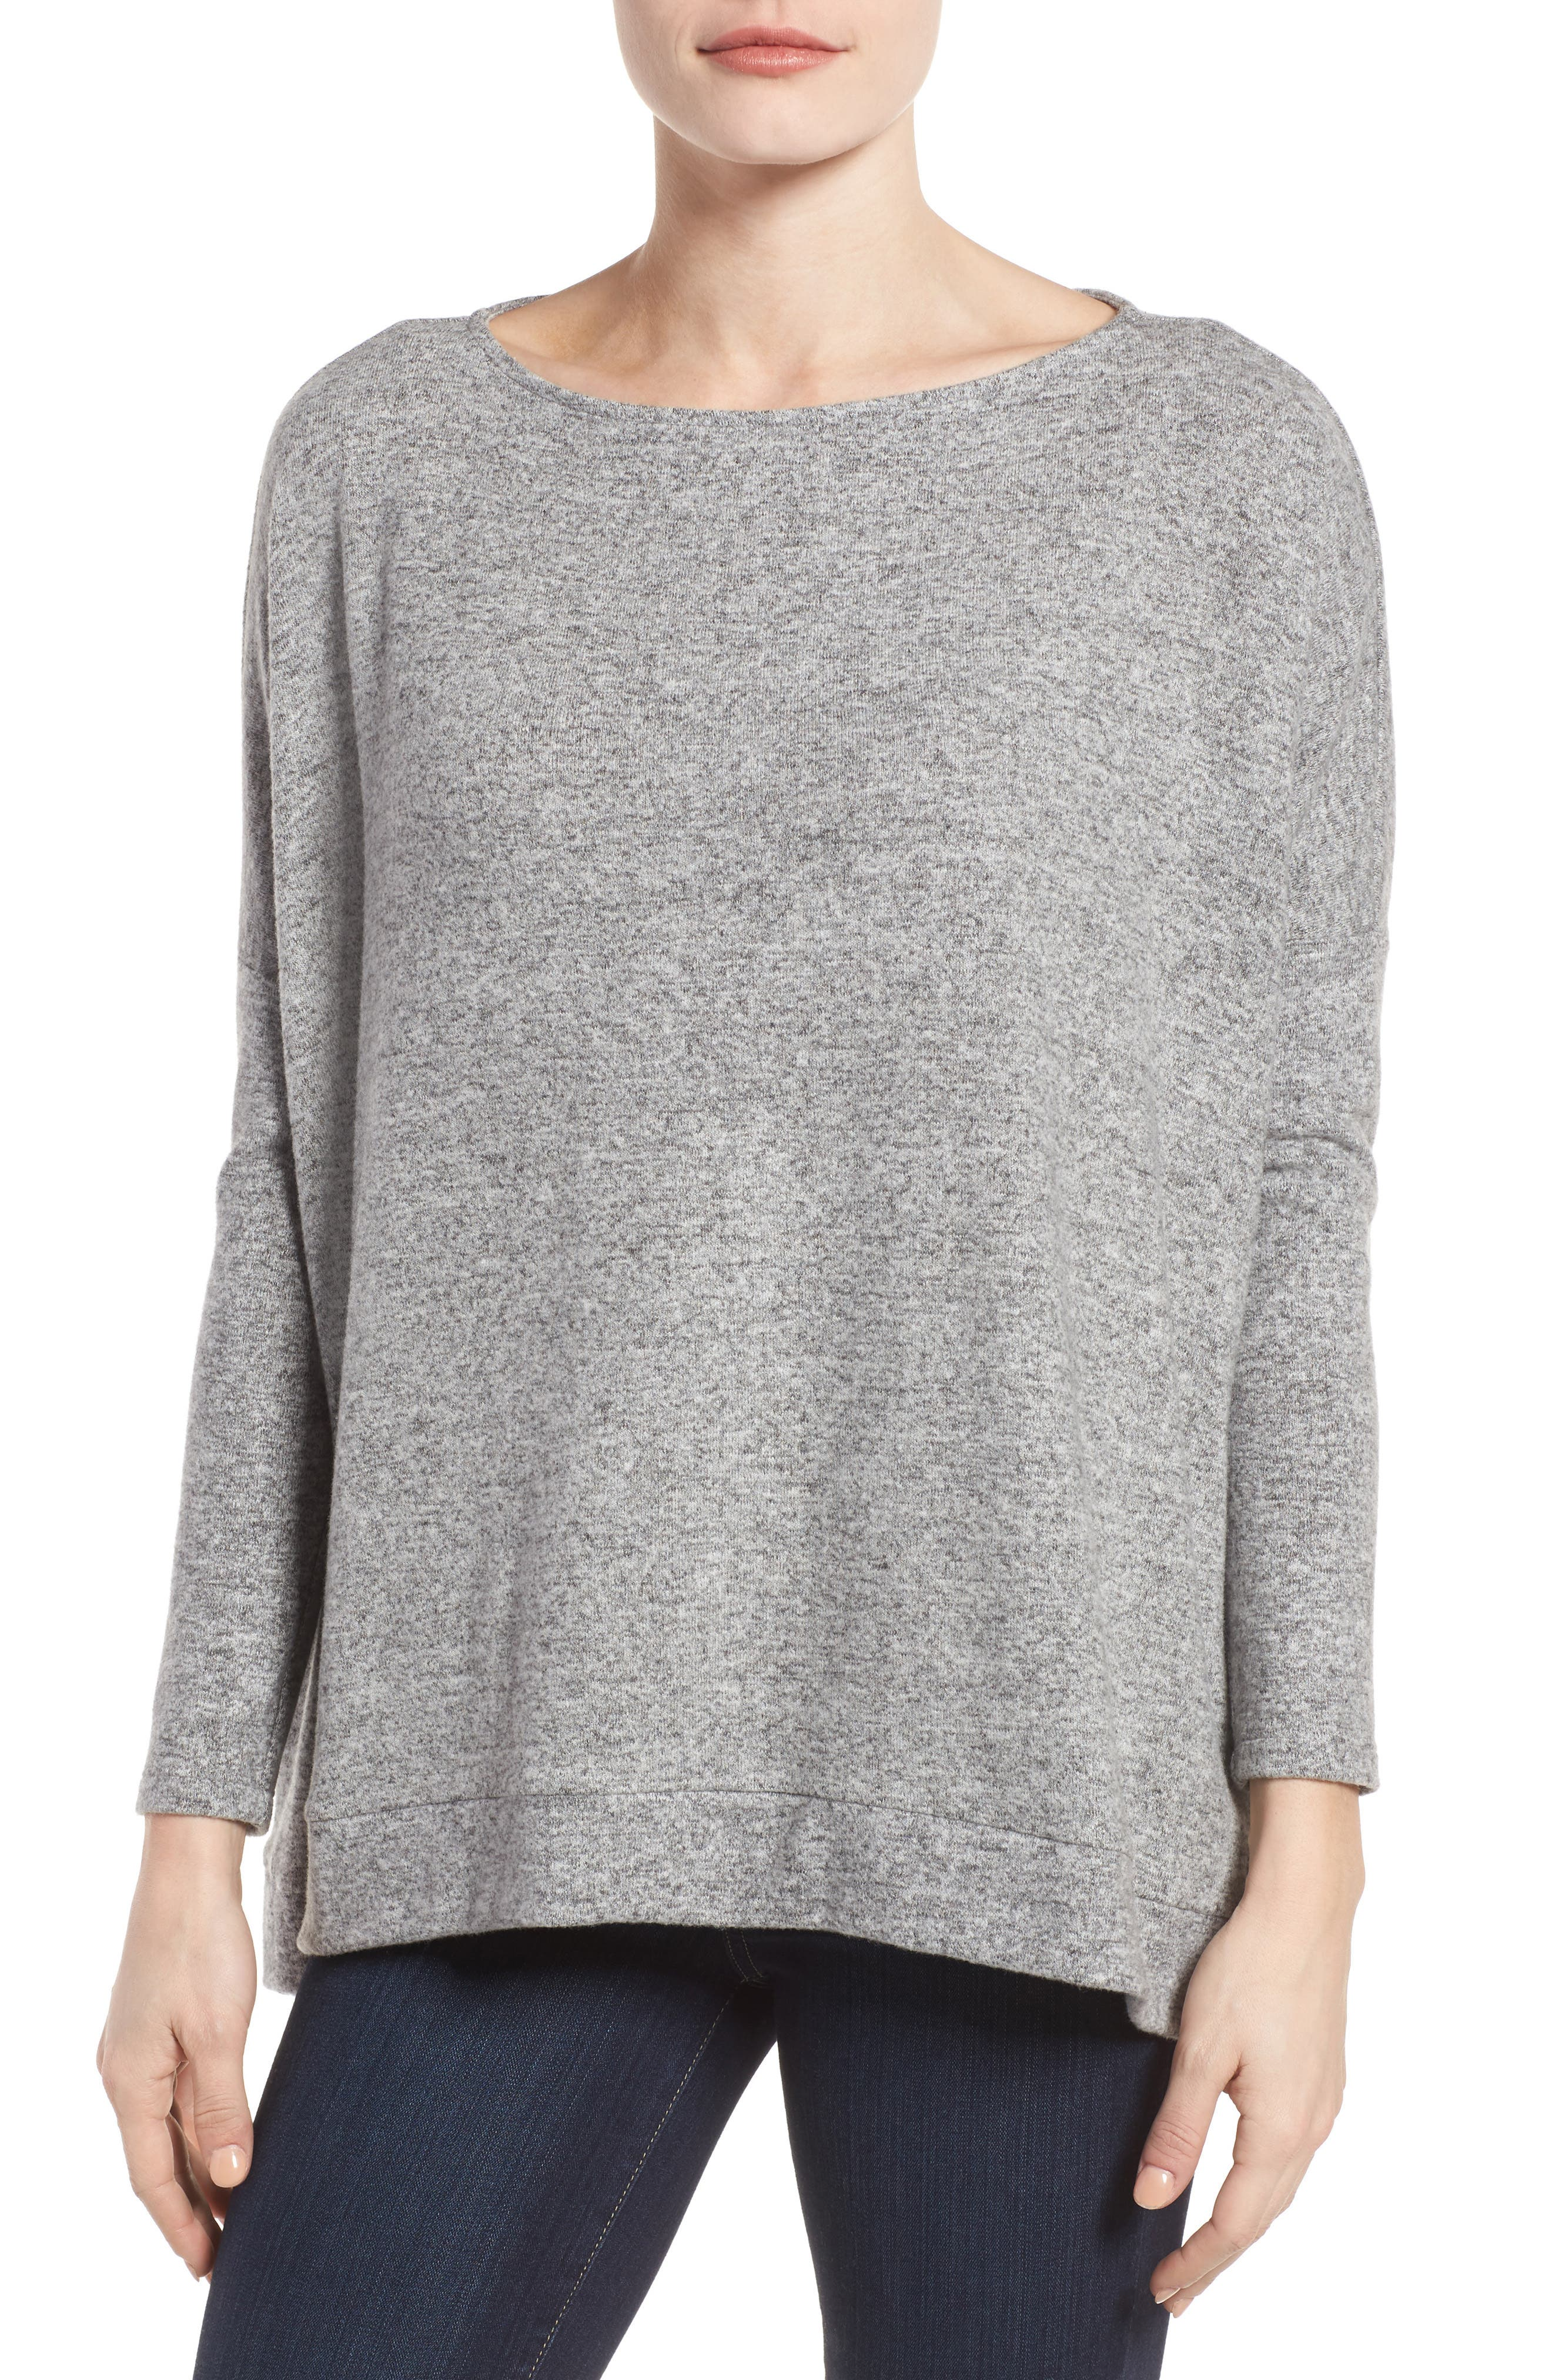 Gibson Boxy Fleece Top (Regular & Petite)